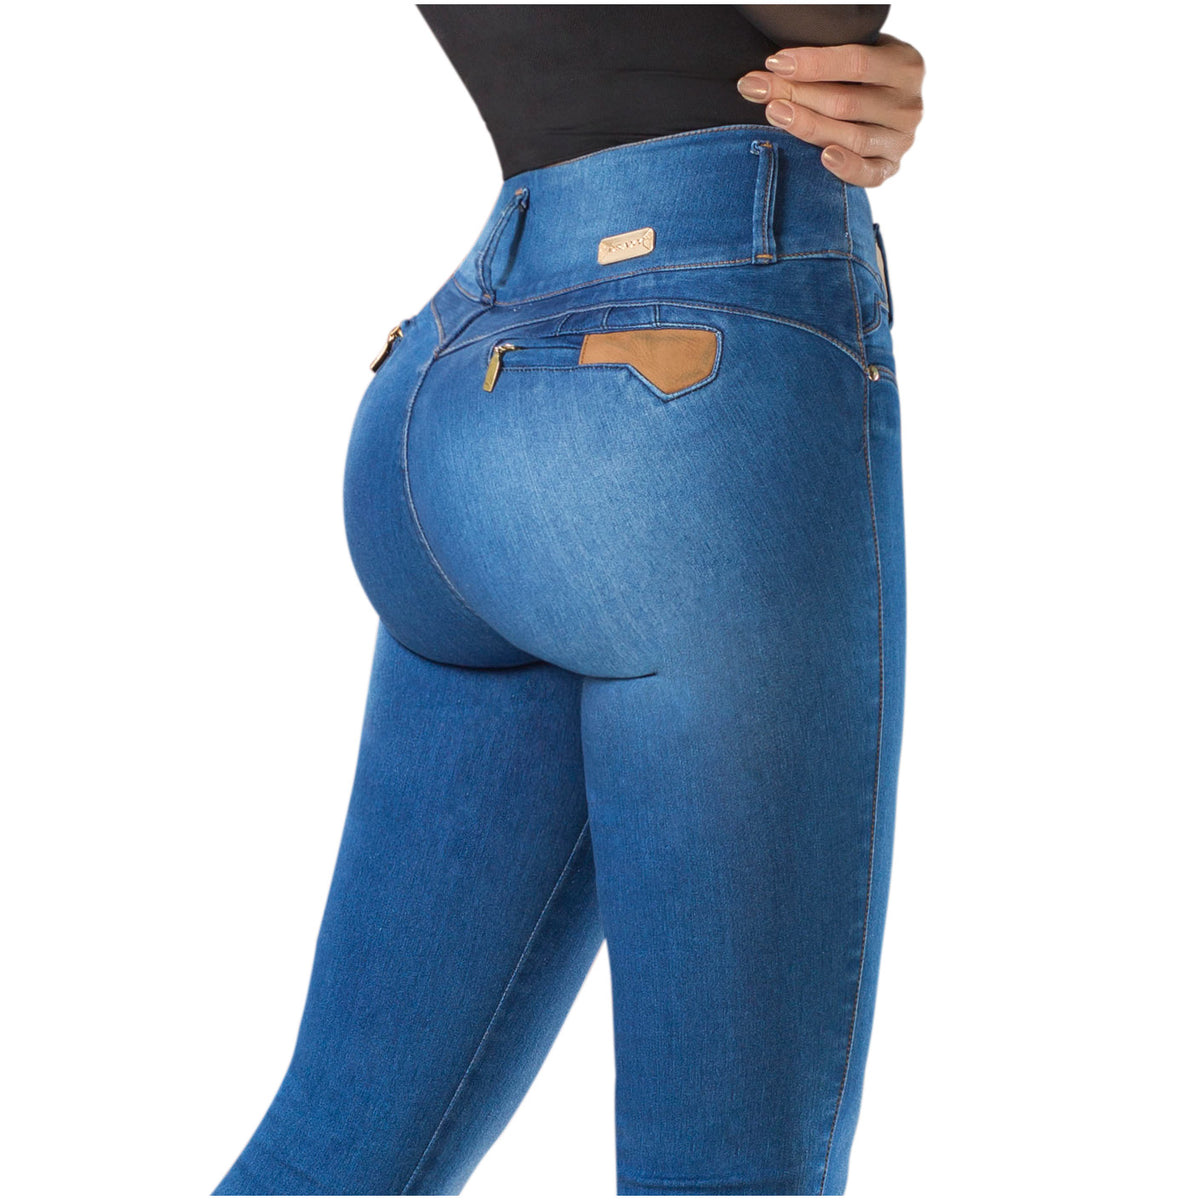 Draxy Women Butt Lifting Colombian Shaping Wonder Booty Jeans